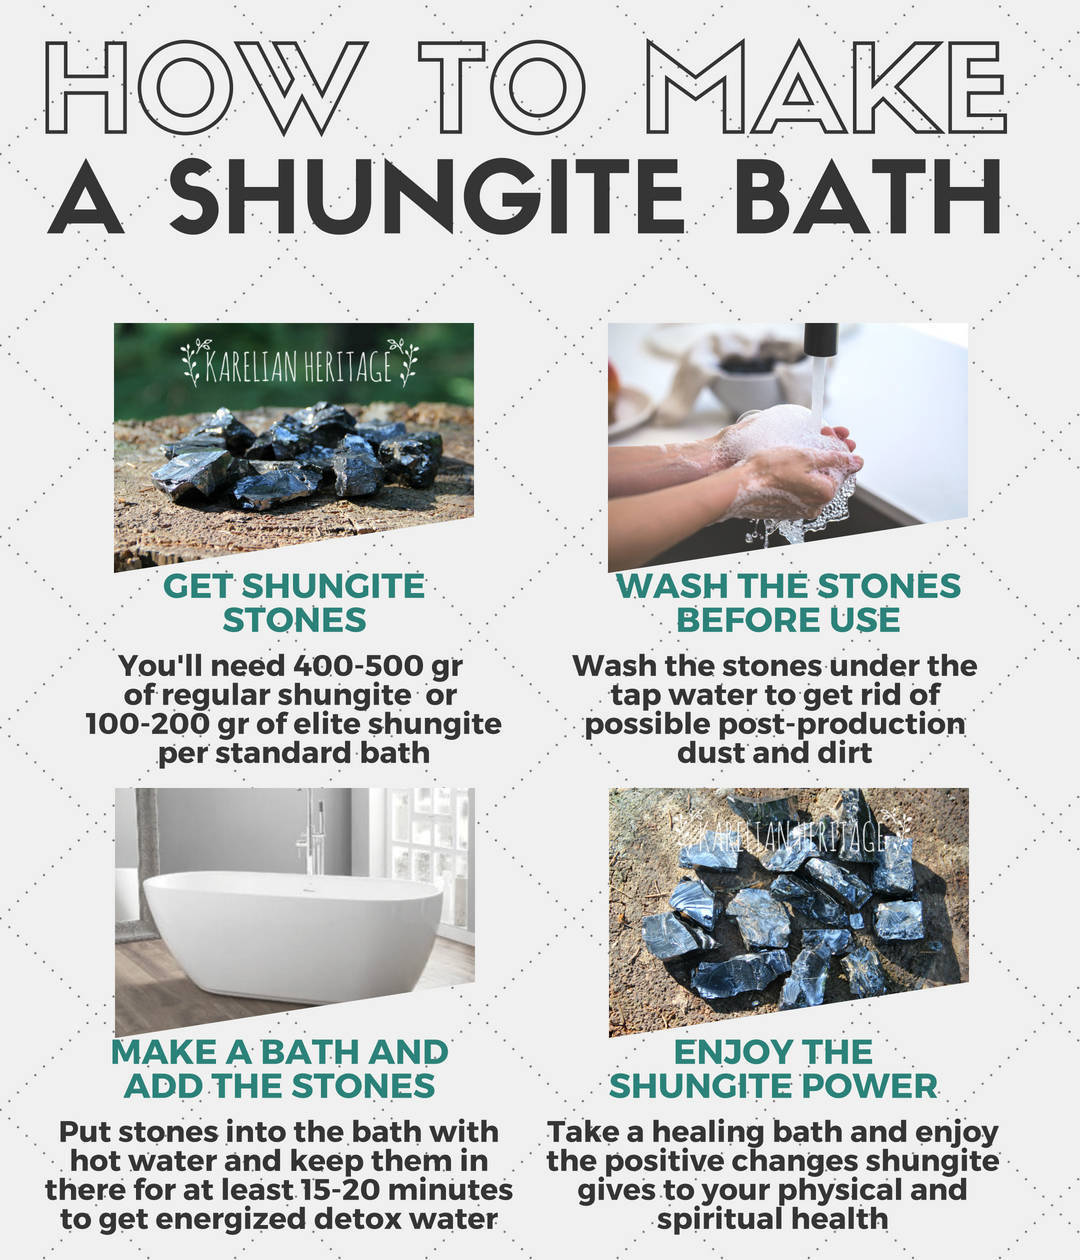 Water Chips Healing Shungite Bath How To Make It